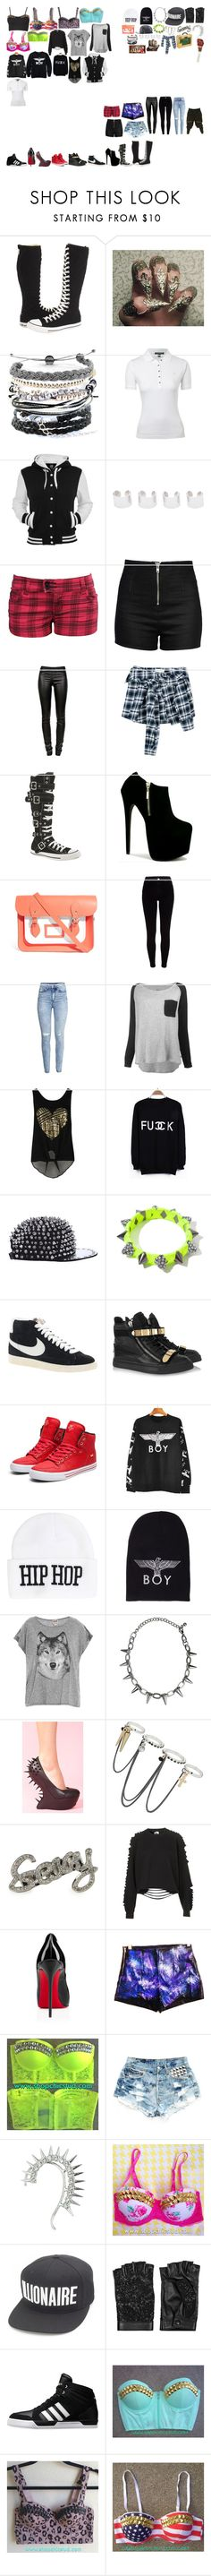 """""""Packing for Tour"""" by kaelighofficial ❤ liked on Polyvore featuring Converse, Domo Beads, Lauren Ralph Lauren, Weiss, Maison Margiela, YMI, Love Moschino, Helmut Lang, Faith Connexion and The Cambridge Satchel Company"""